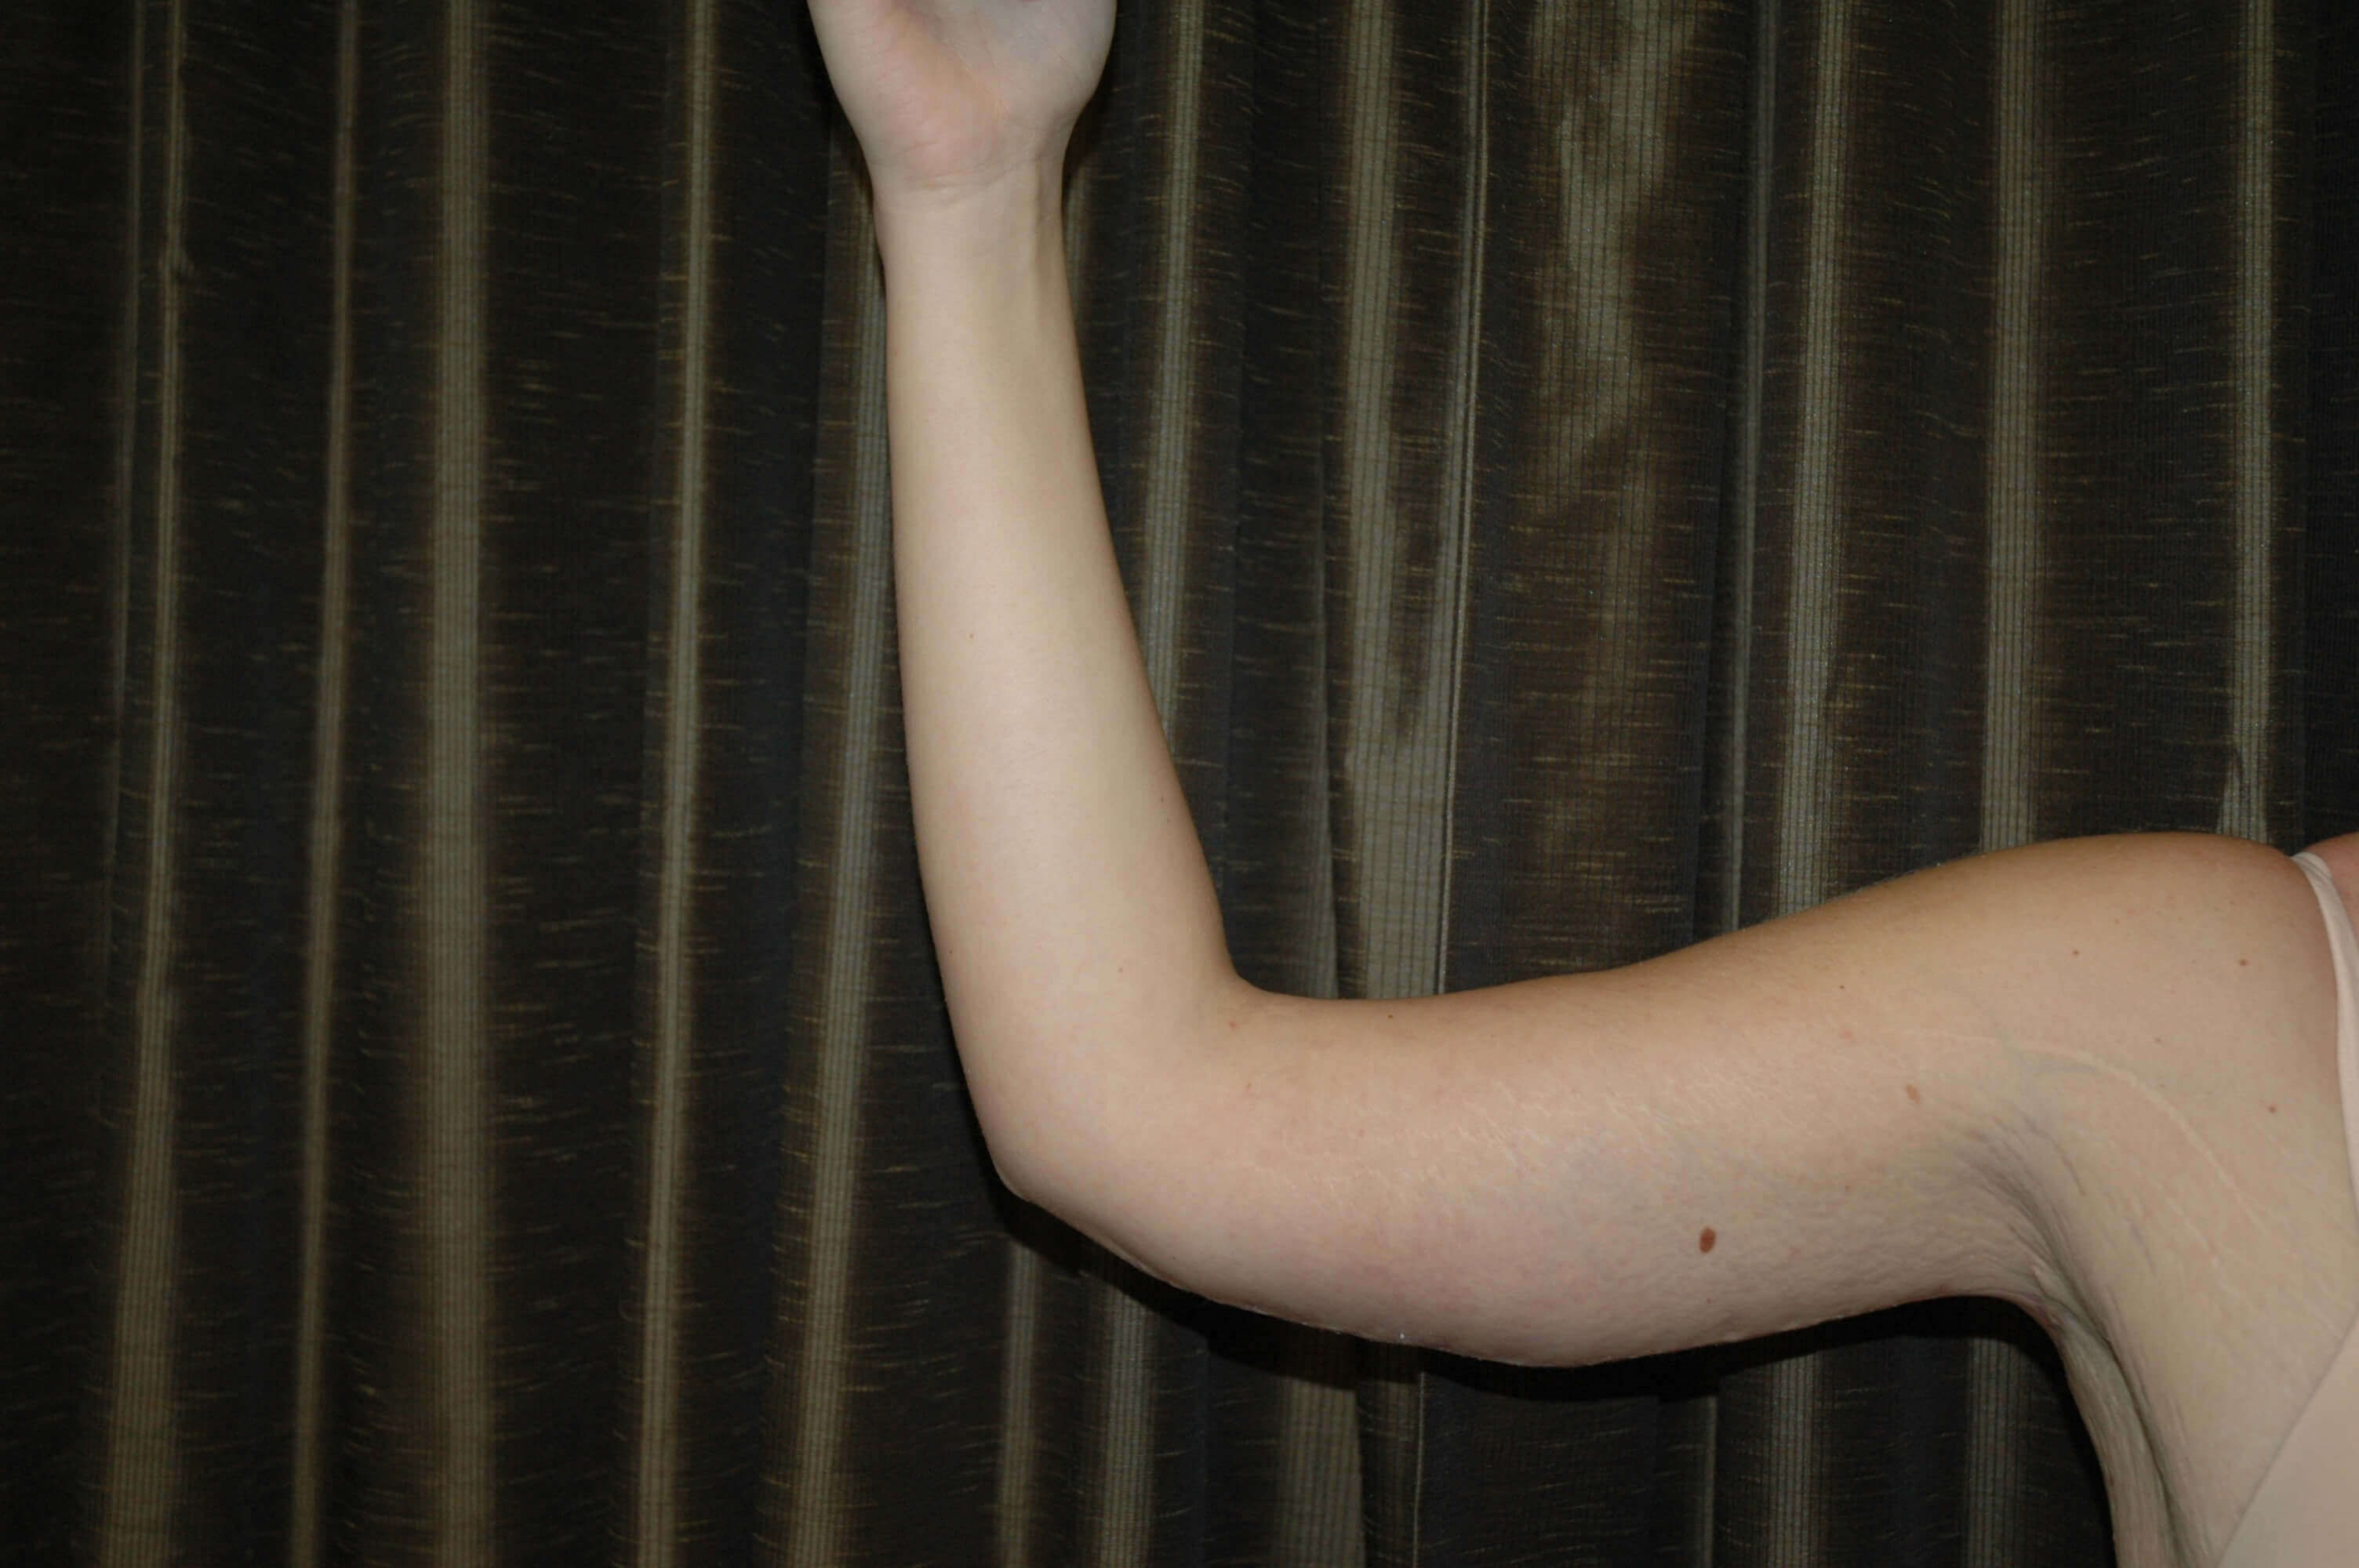 Arm lift plastic surgery pics After